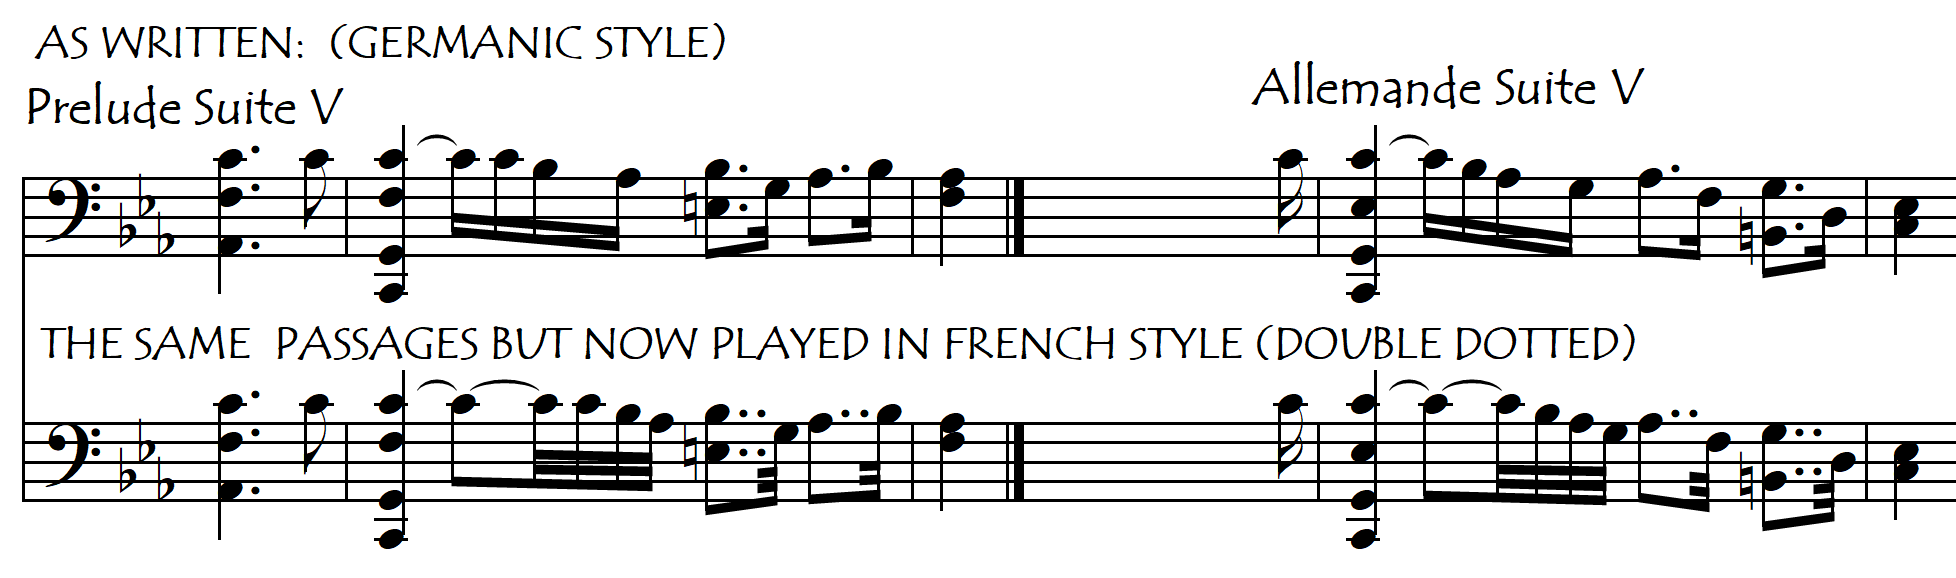 bach V dotted and double dotted